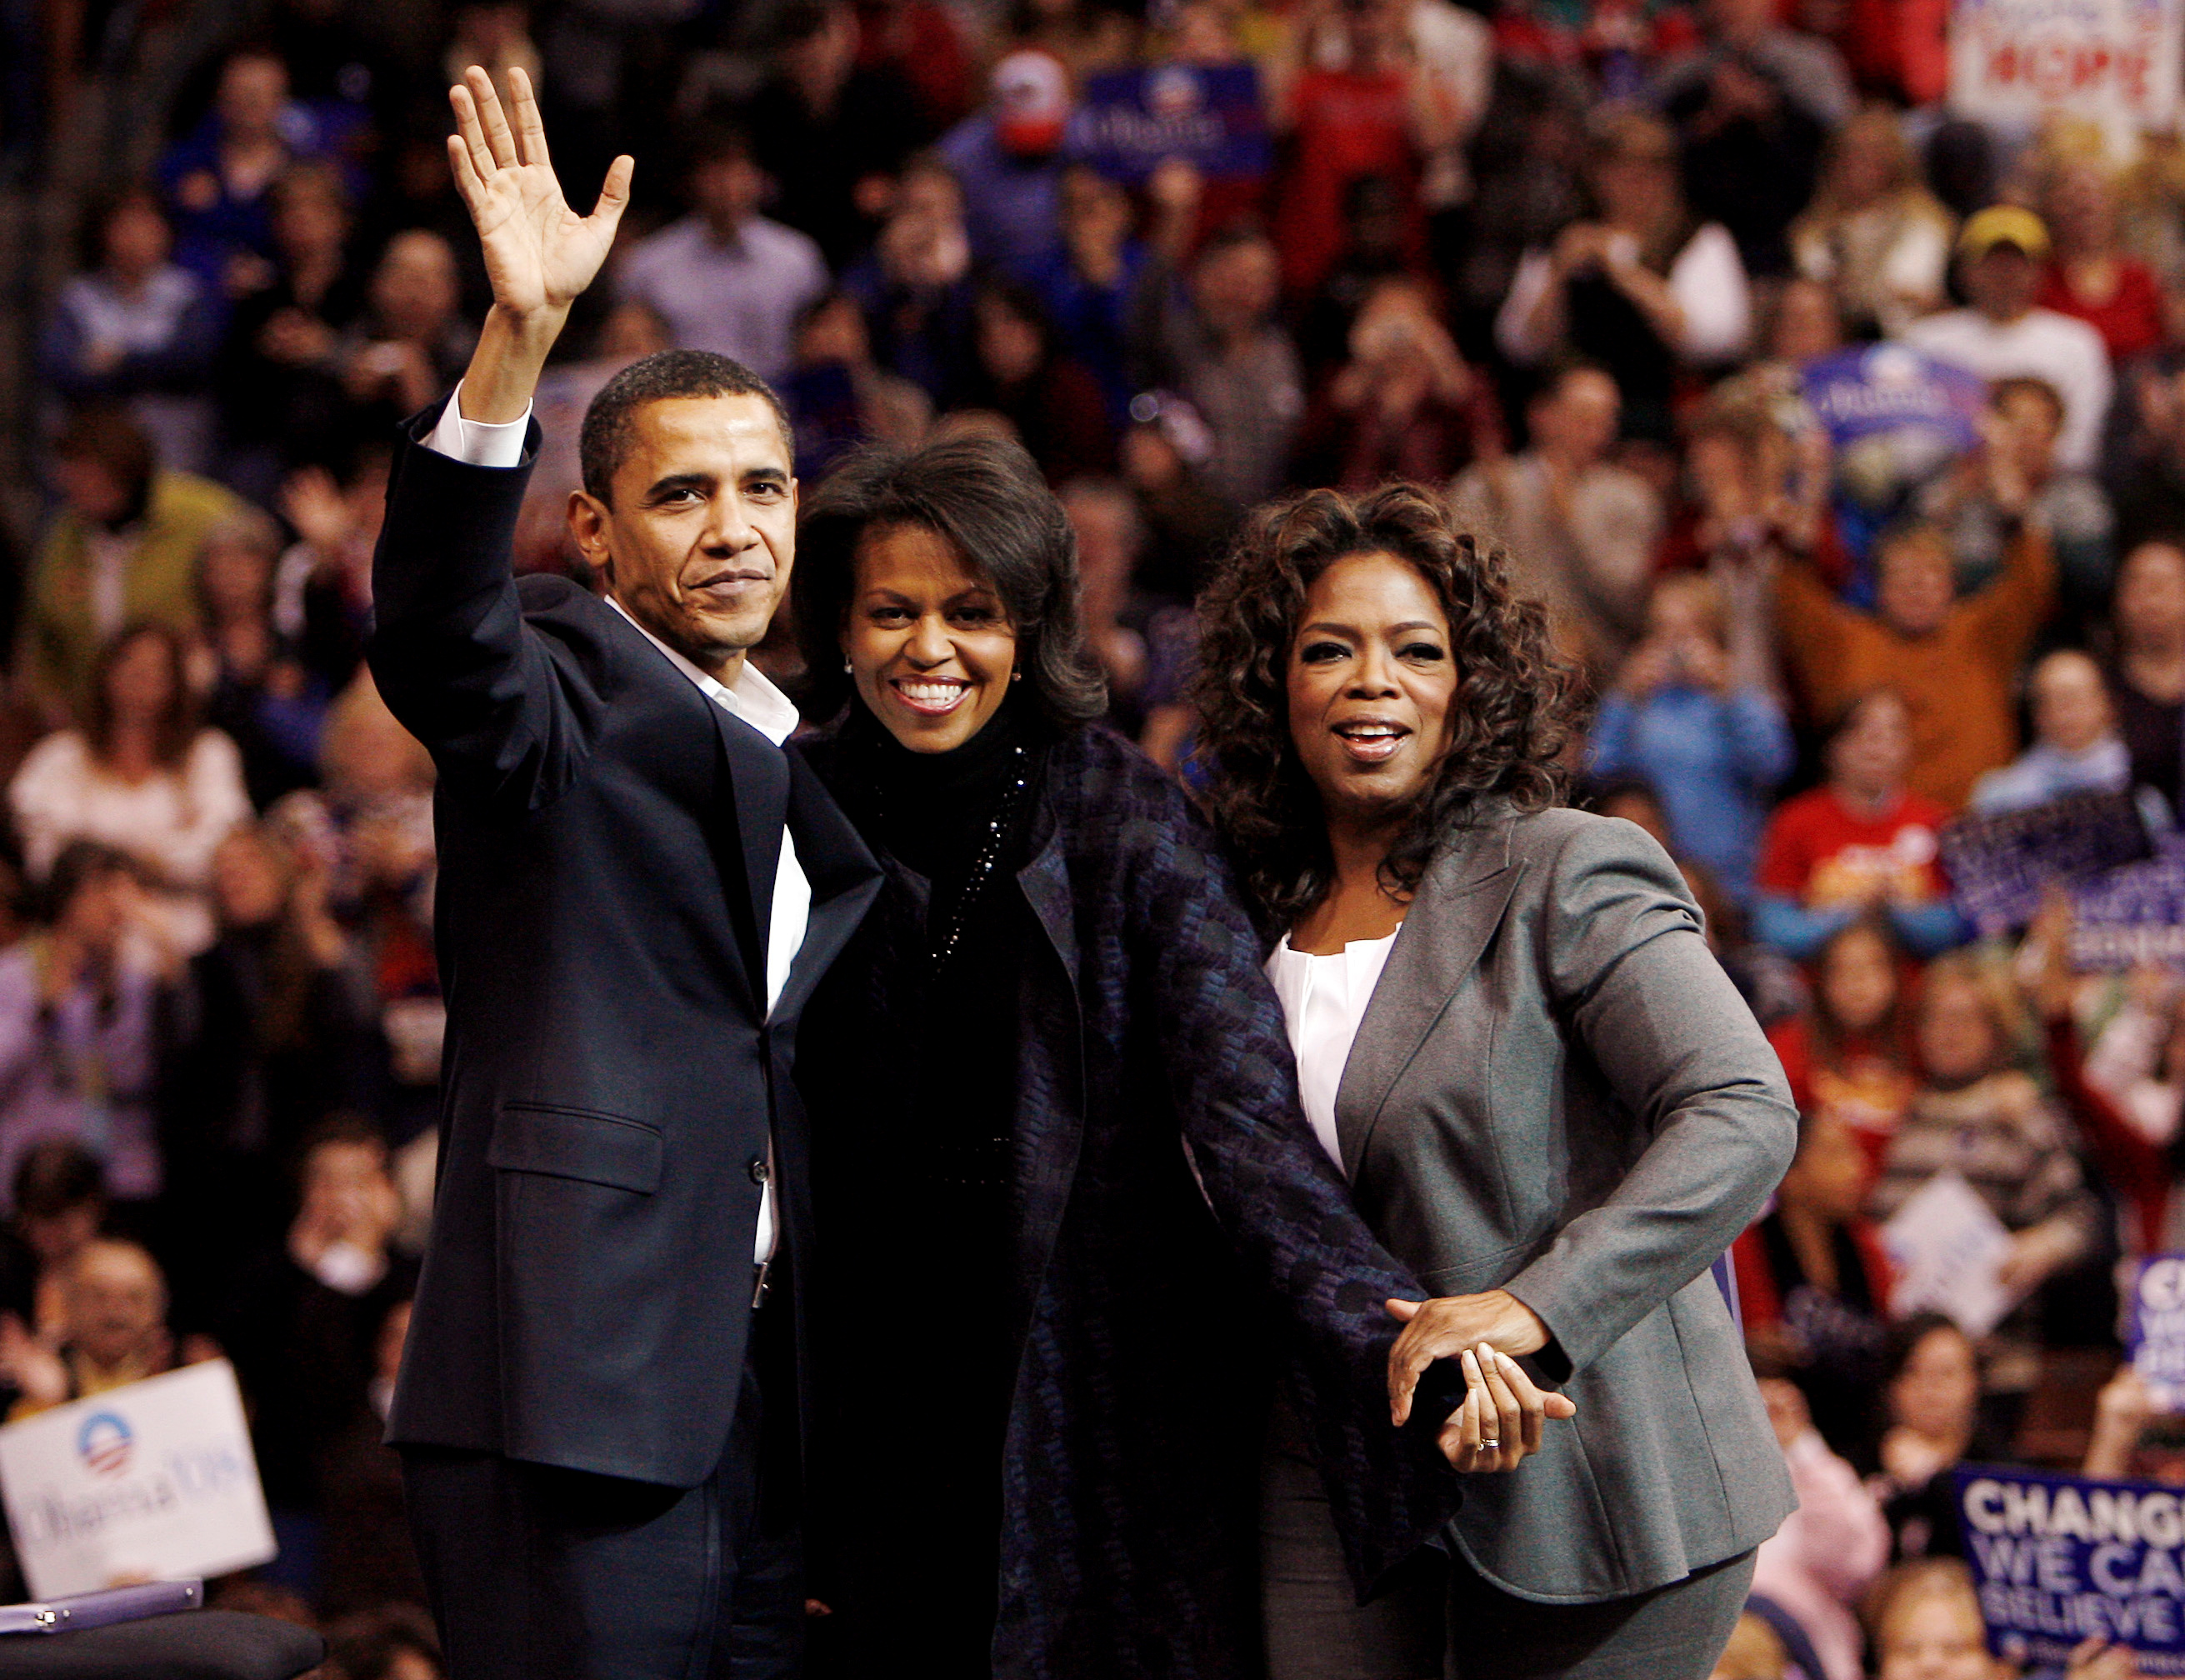 FILE - Democratic presidential candidate U.S. Senator Barack Obama, left, his wife Michelle, center, and talk show host Oprah Winfrey wave to the crowd at a campaign rally in Manchester, New Hampshire, Dec. 9, 2007.